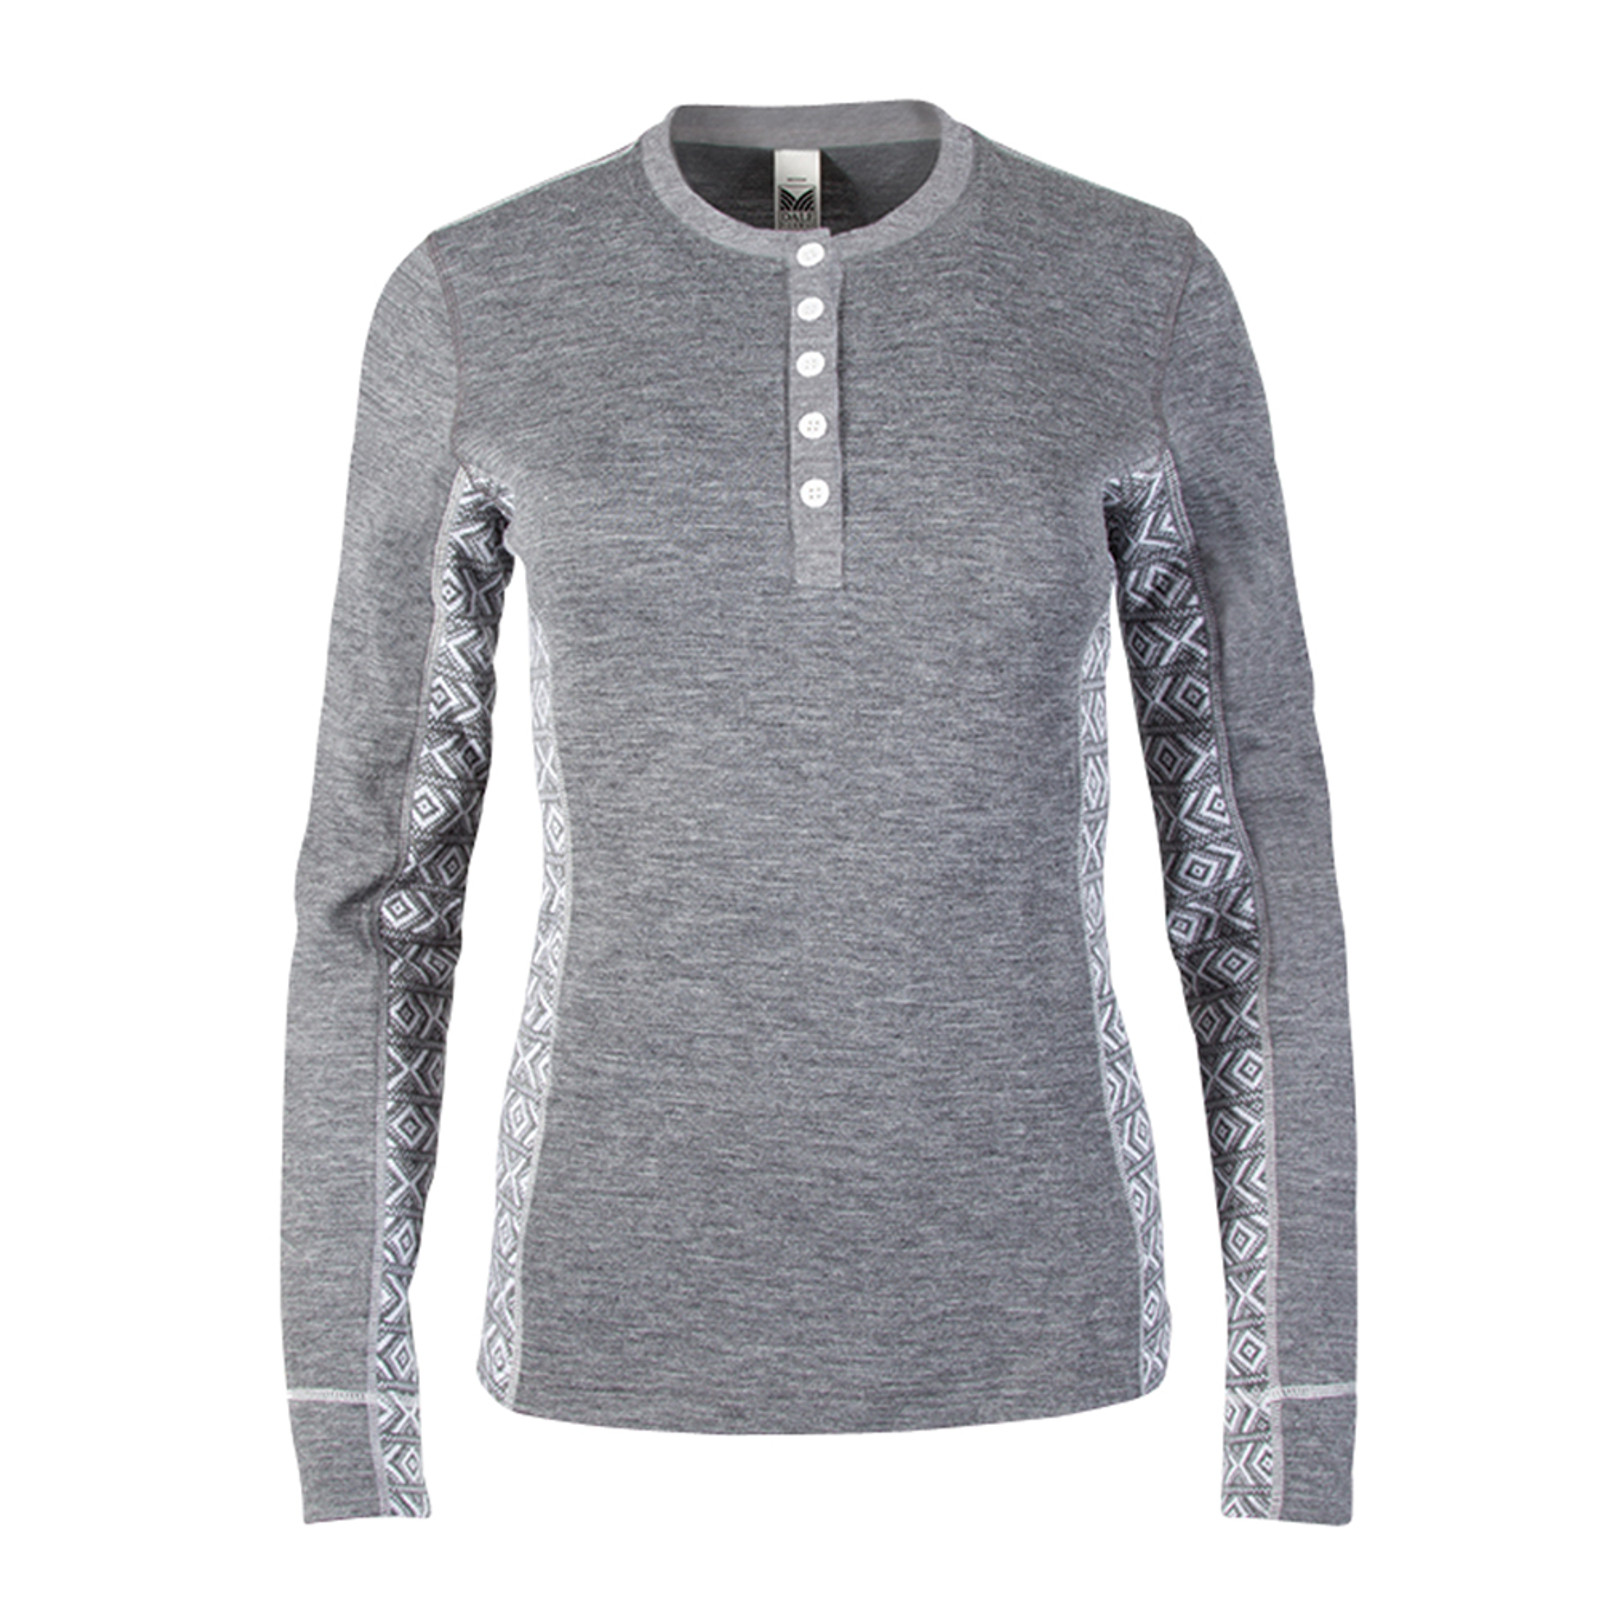 Dale of Norway, Bykle Shirting, Ladies, in Gray/White, 93201-E